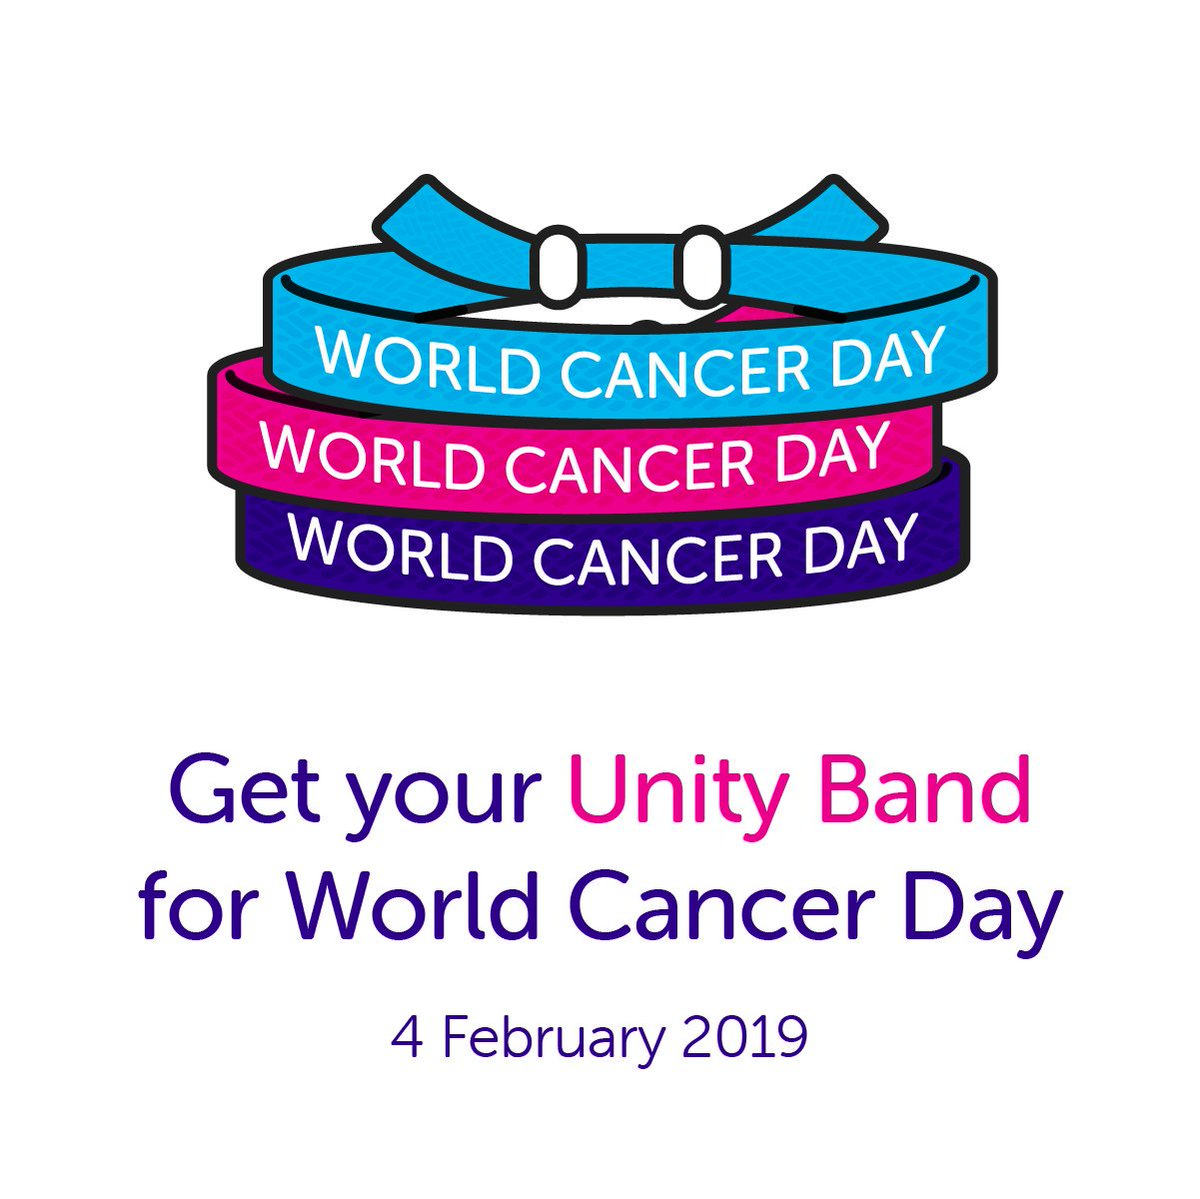 It&#39;s not too late to support #WorldCancerDay . Get your #UnityBand in-store today and help fund our life-saving research.<br>http://pic.twitter.com/bdKgrfr1G4